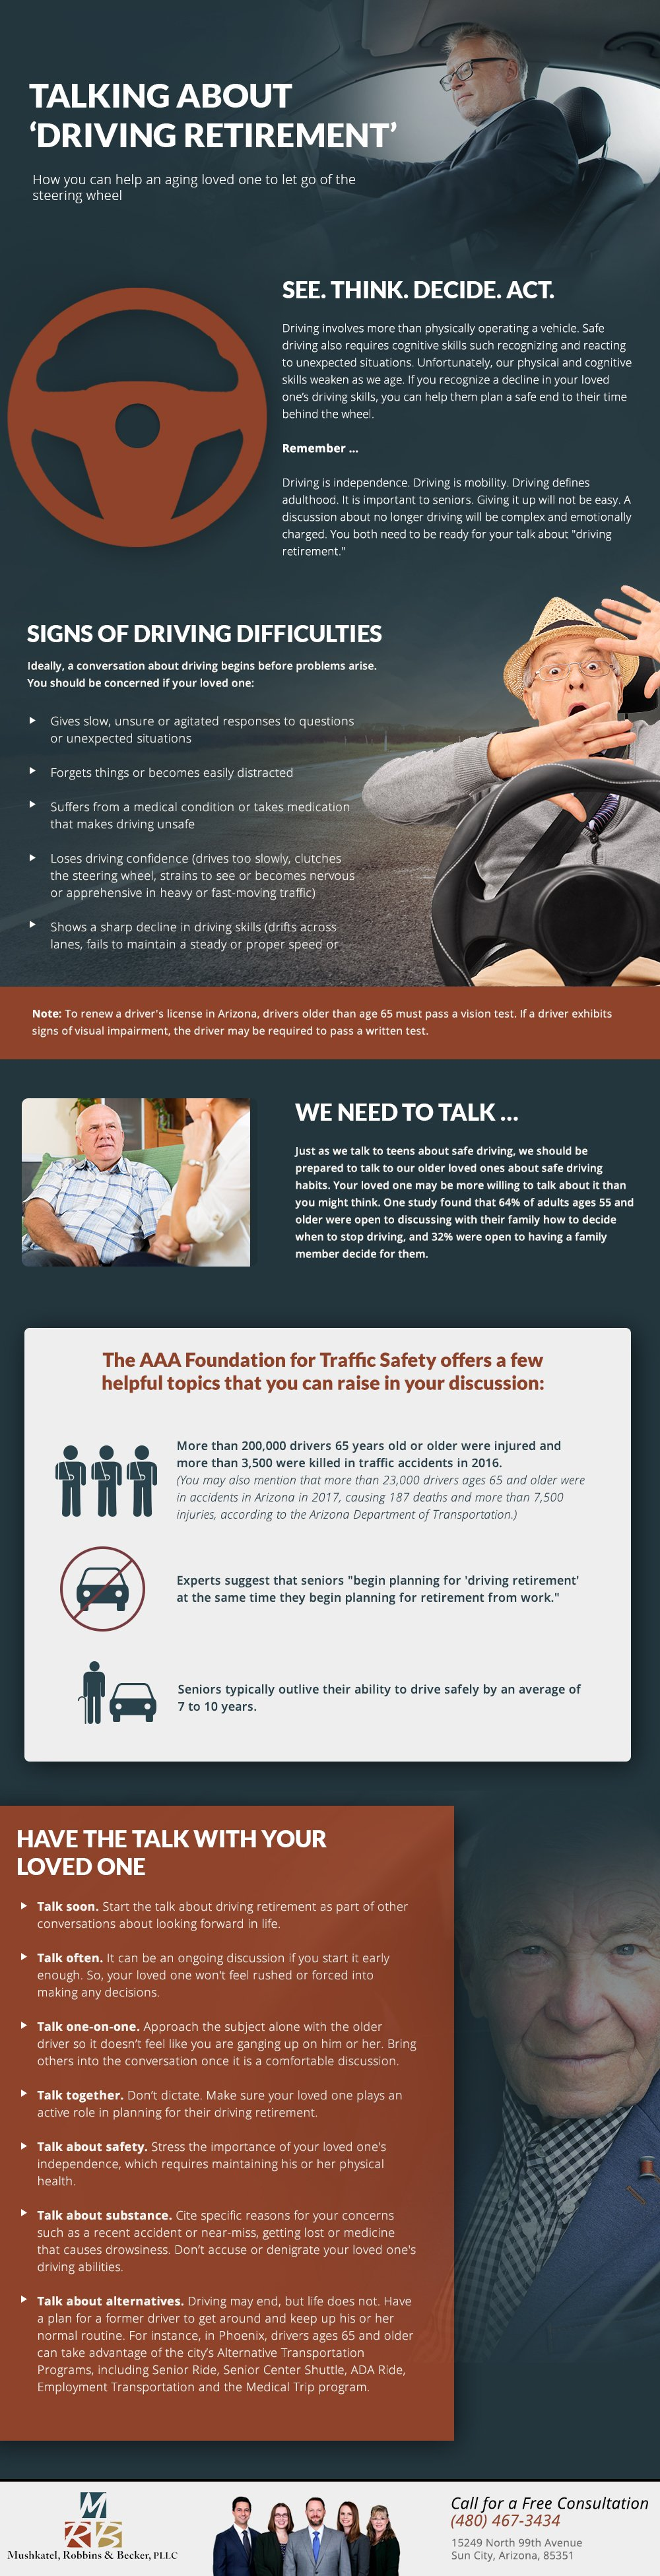 driving-retirement-infographic-plaza